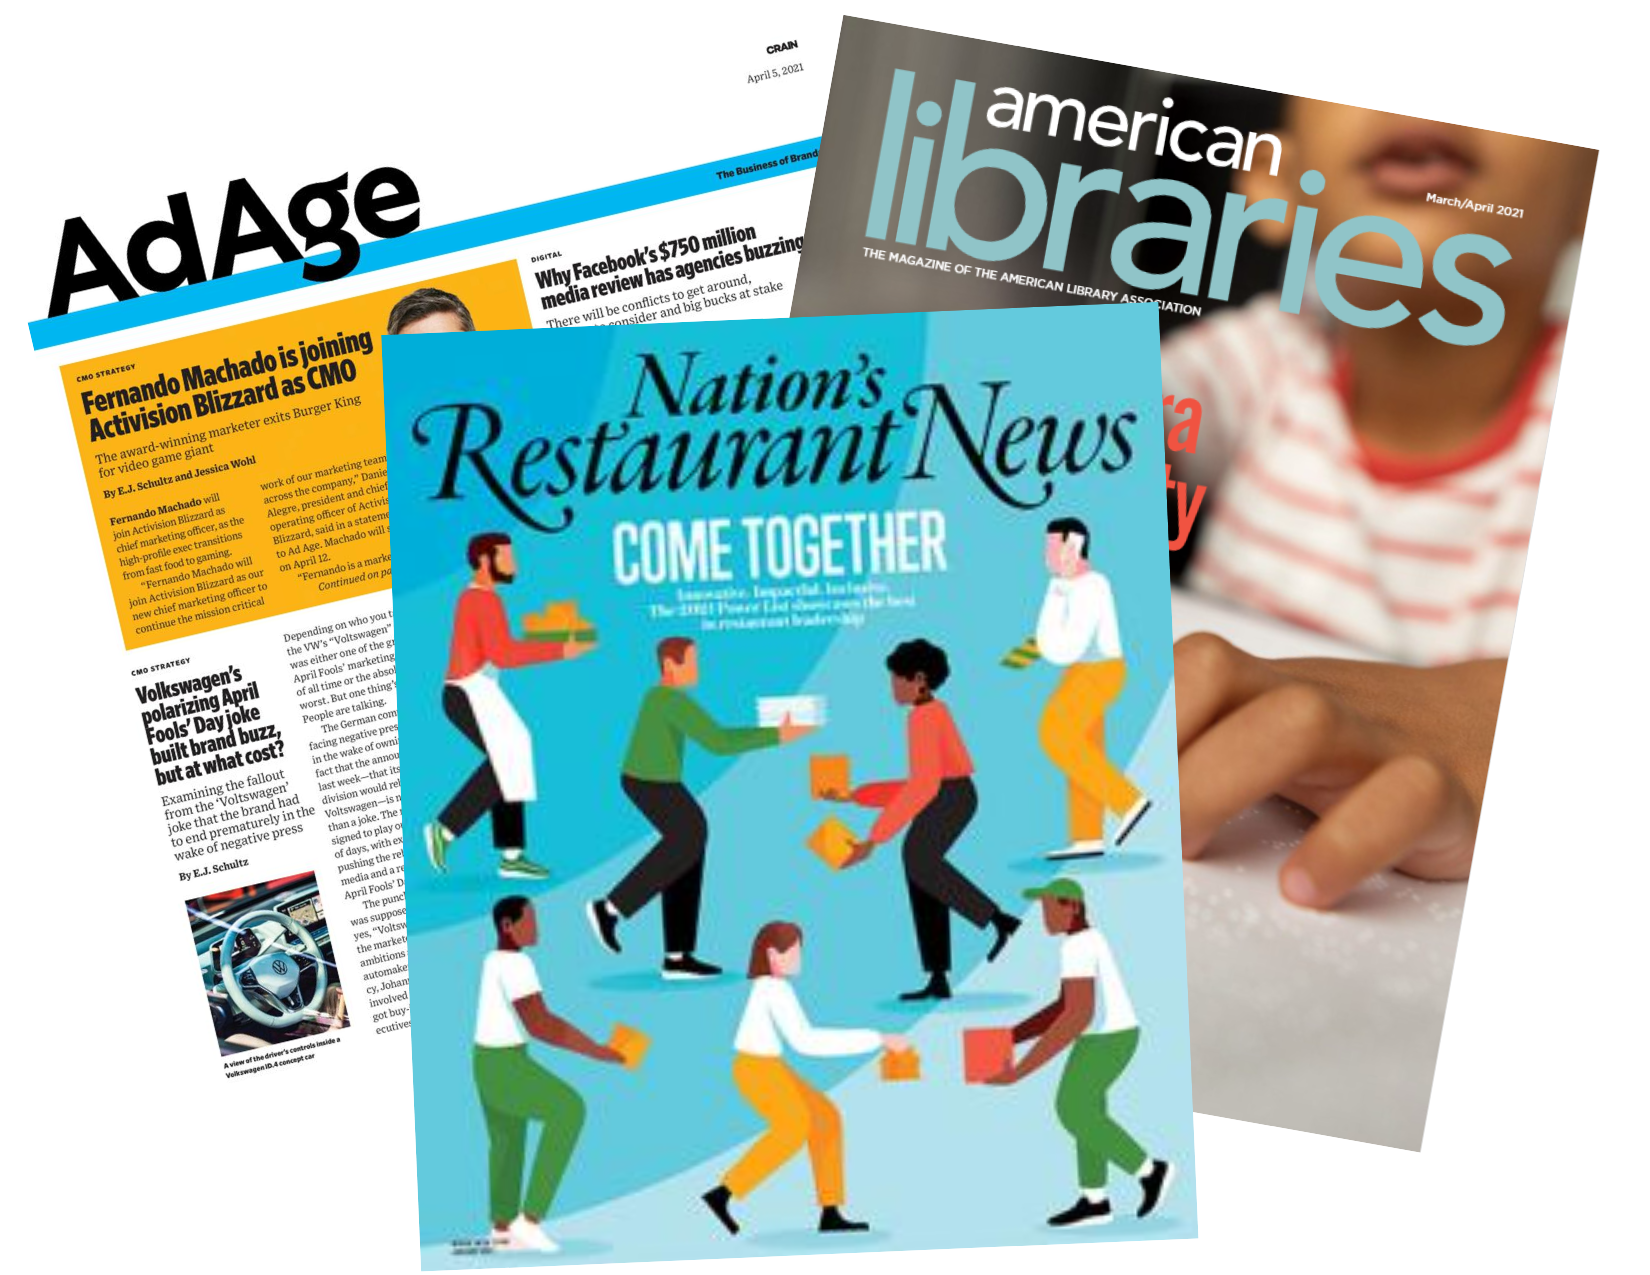 Trade Magazine Covers: Ad Age, American Libraries, Nation's Restaurant News